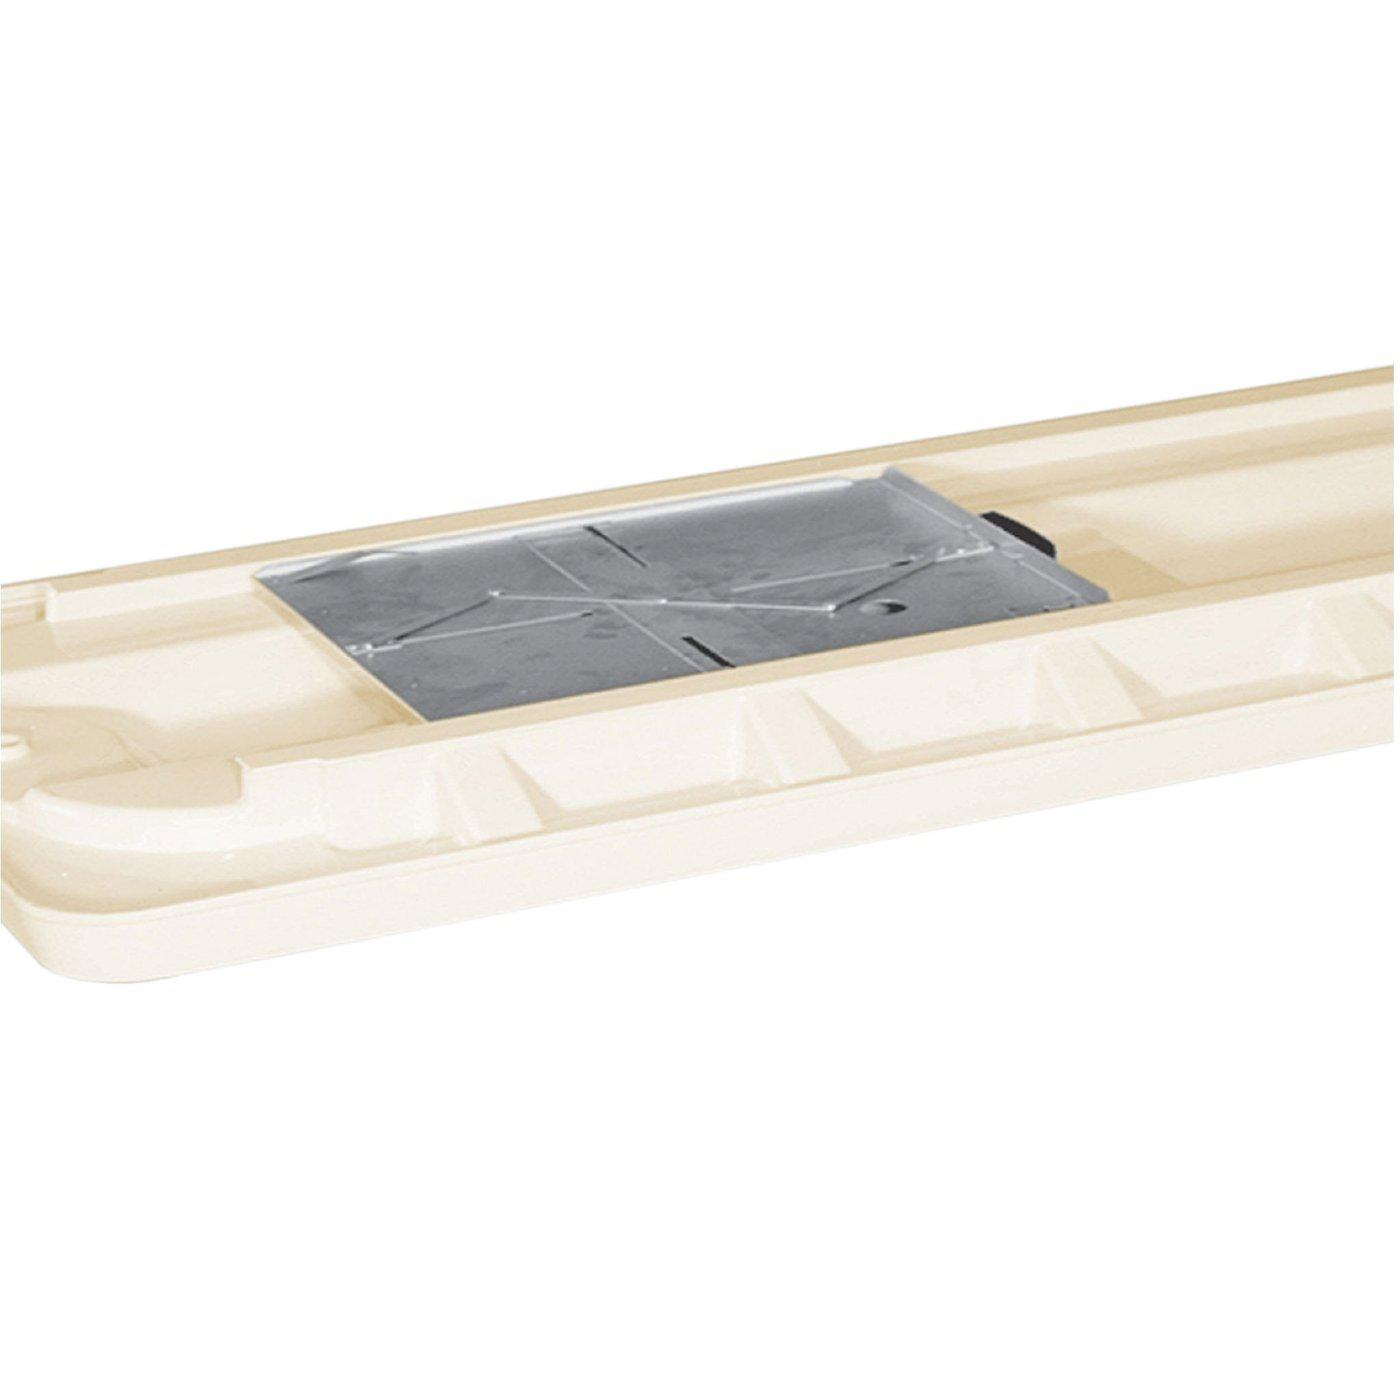 Carrier Chassis Tray with X-Ray Slide Rails-Cadaver Trays-Mortech Manufacturing Company Inc. Quality Stainless Steel Autopsy, Morgue, Funeral Home, Necropsy, Veterinary / Anatomy, Dissection Equipment and Accessories